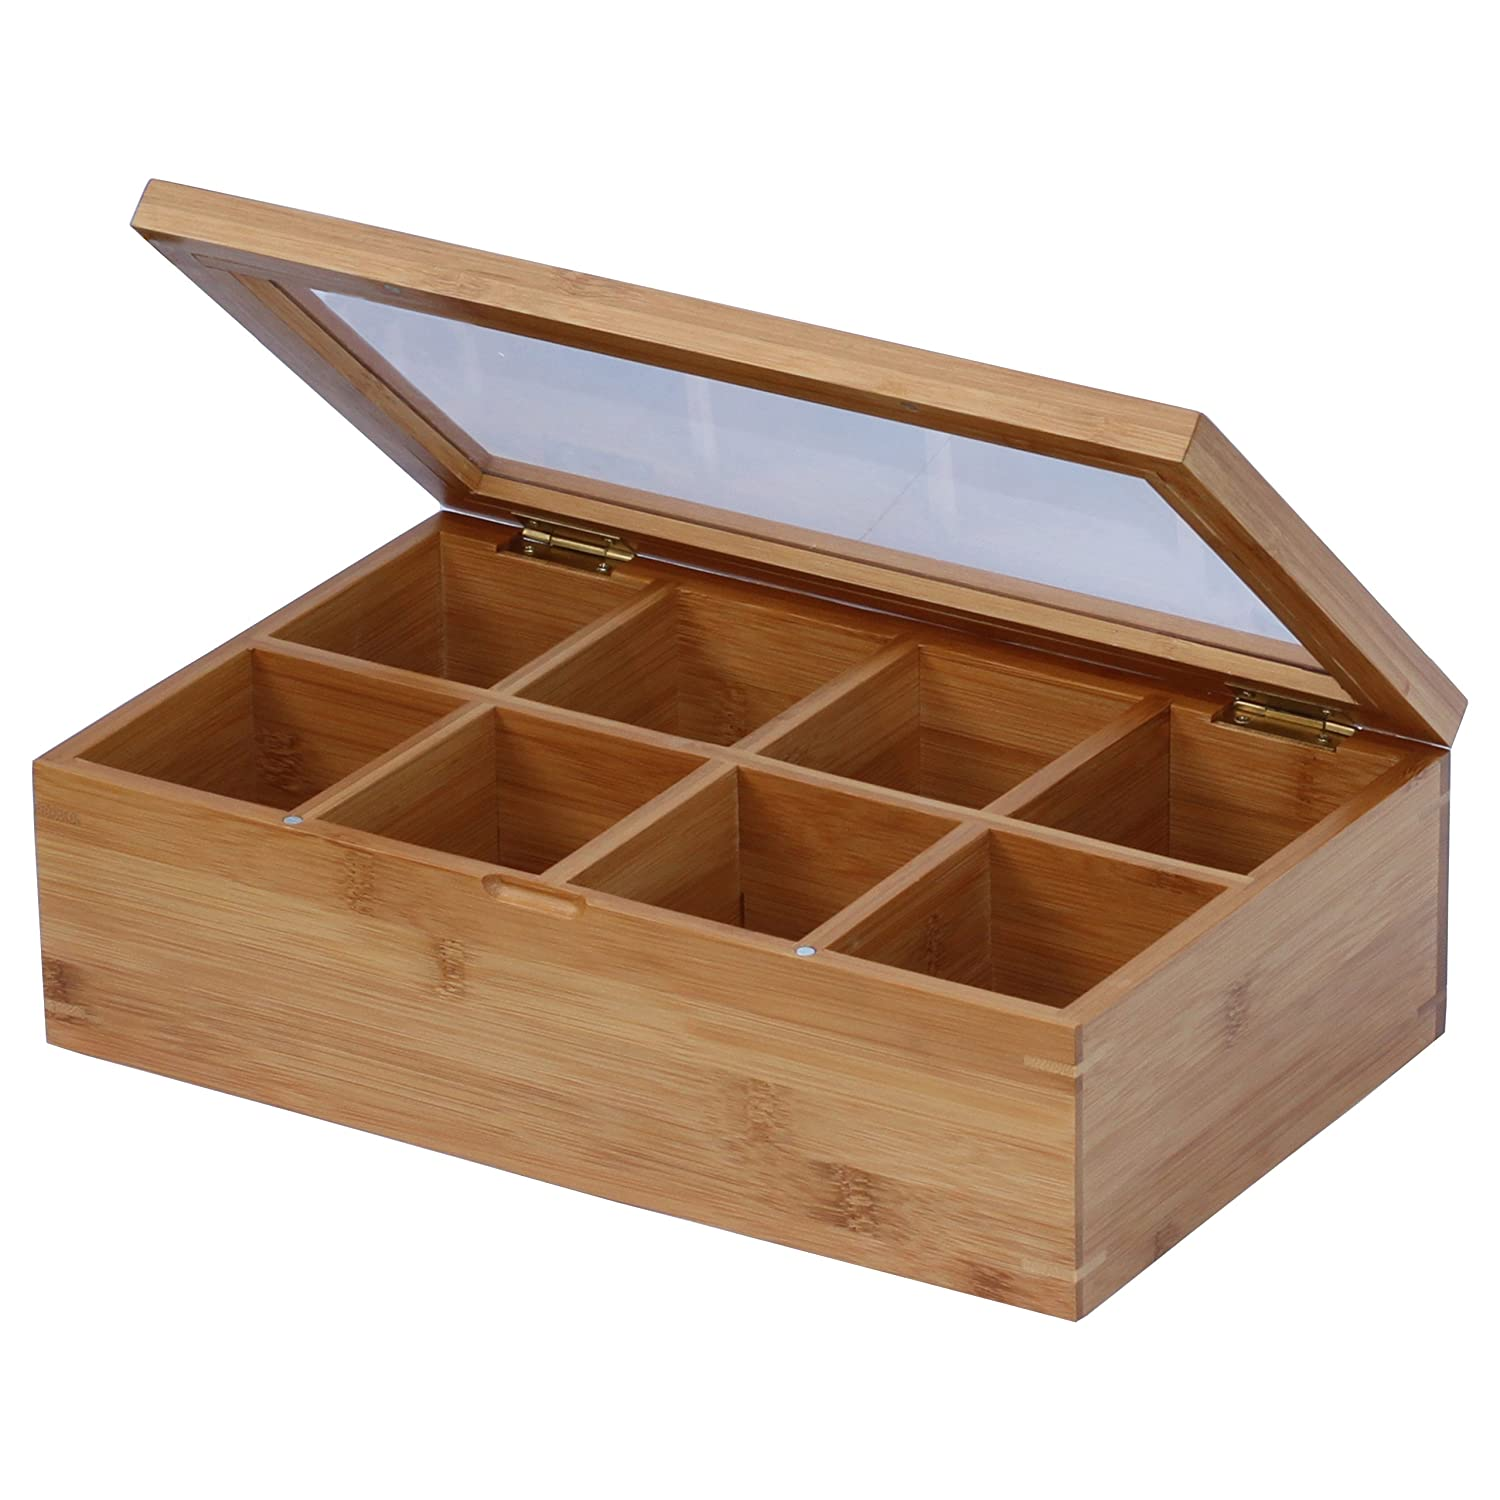 Natural Bamboo Tea Box for easy viewing Image